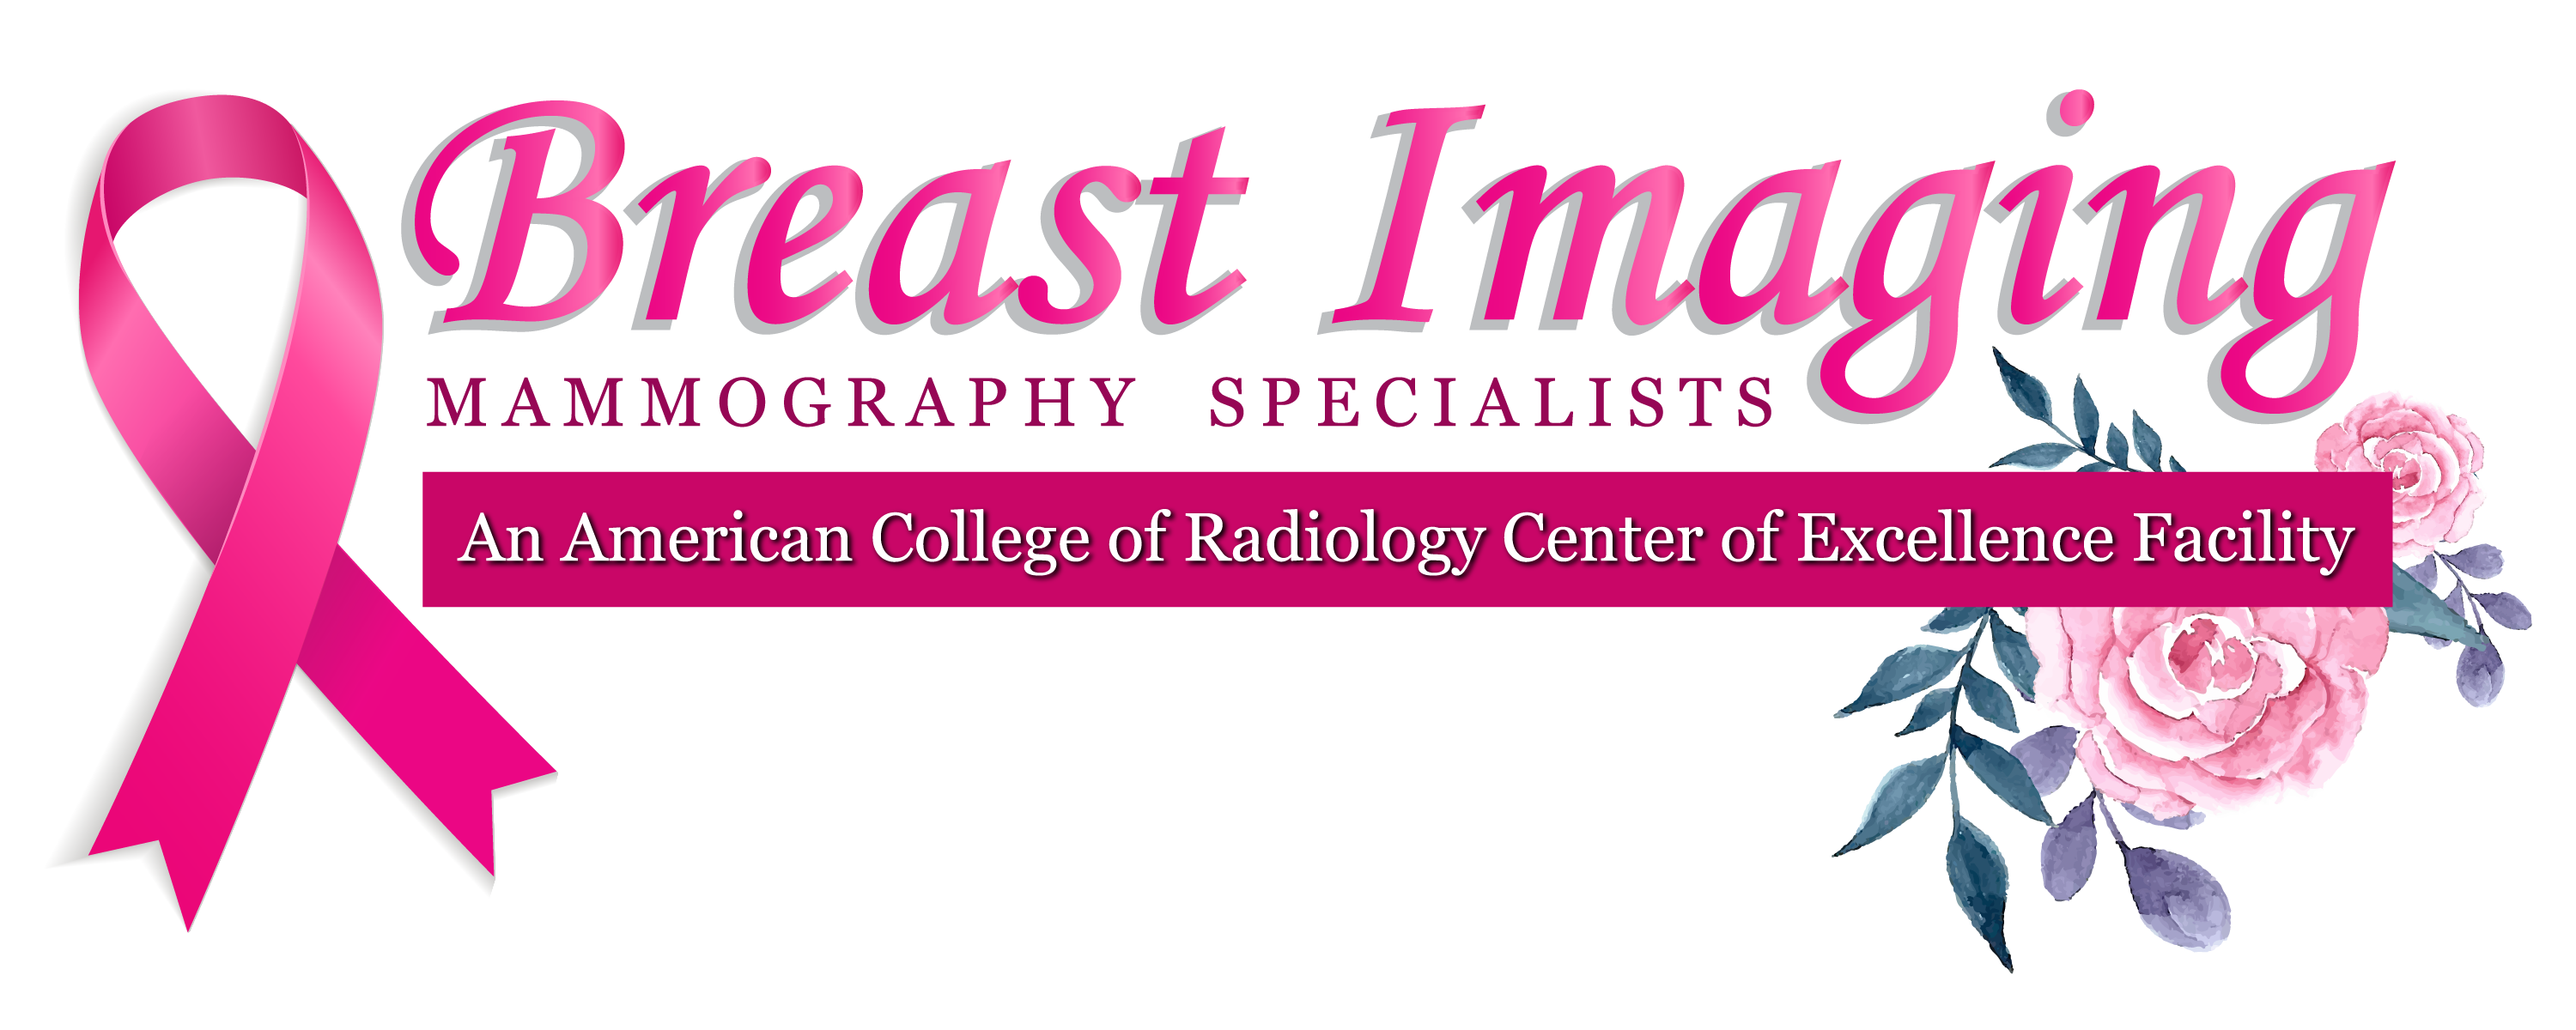 Breast Imaging Mamography Specialists